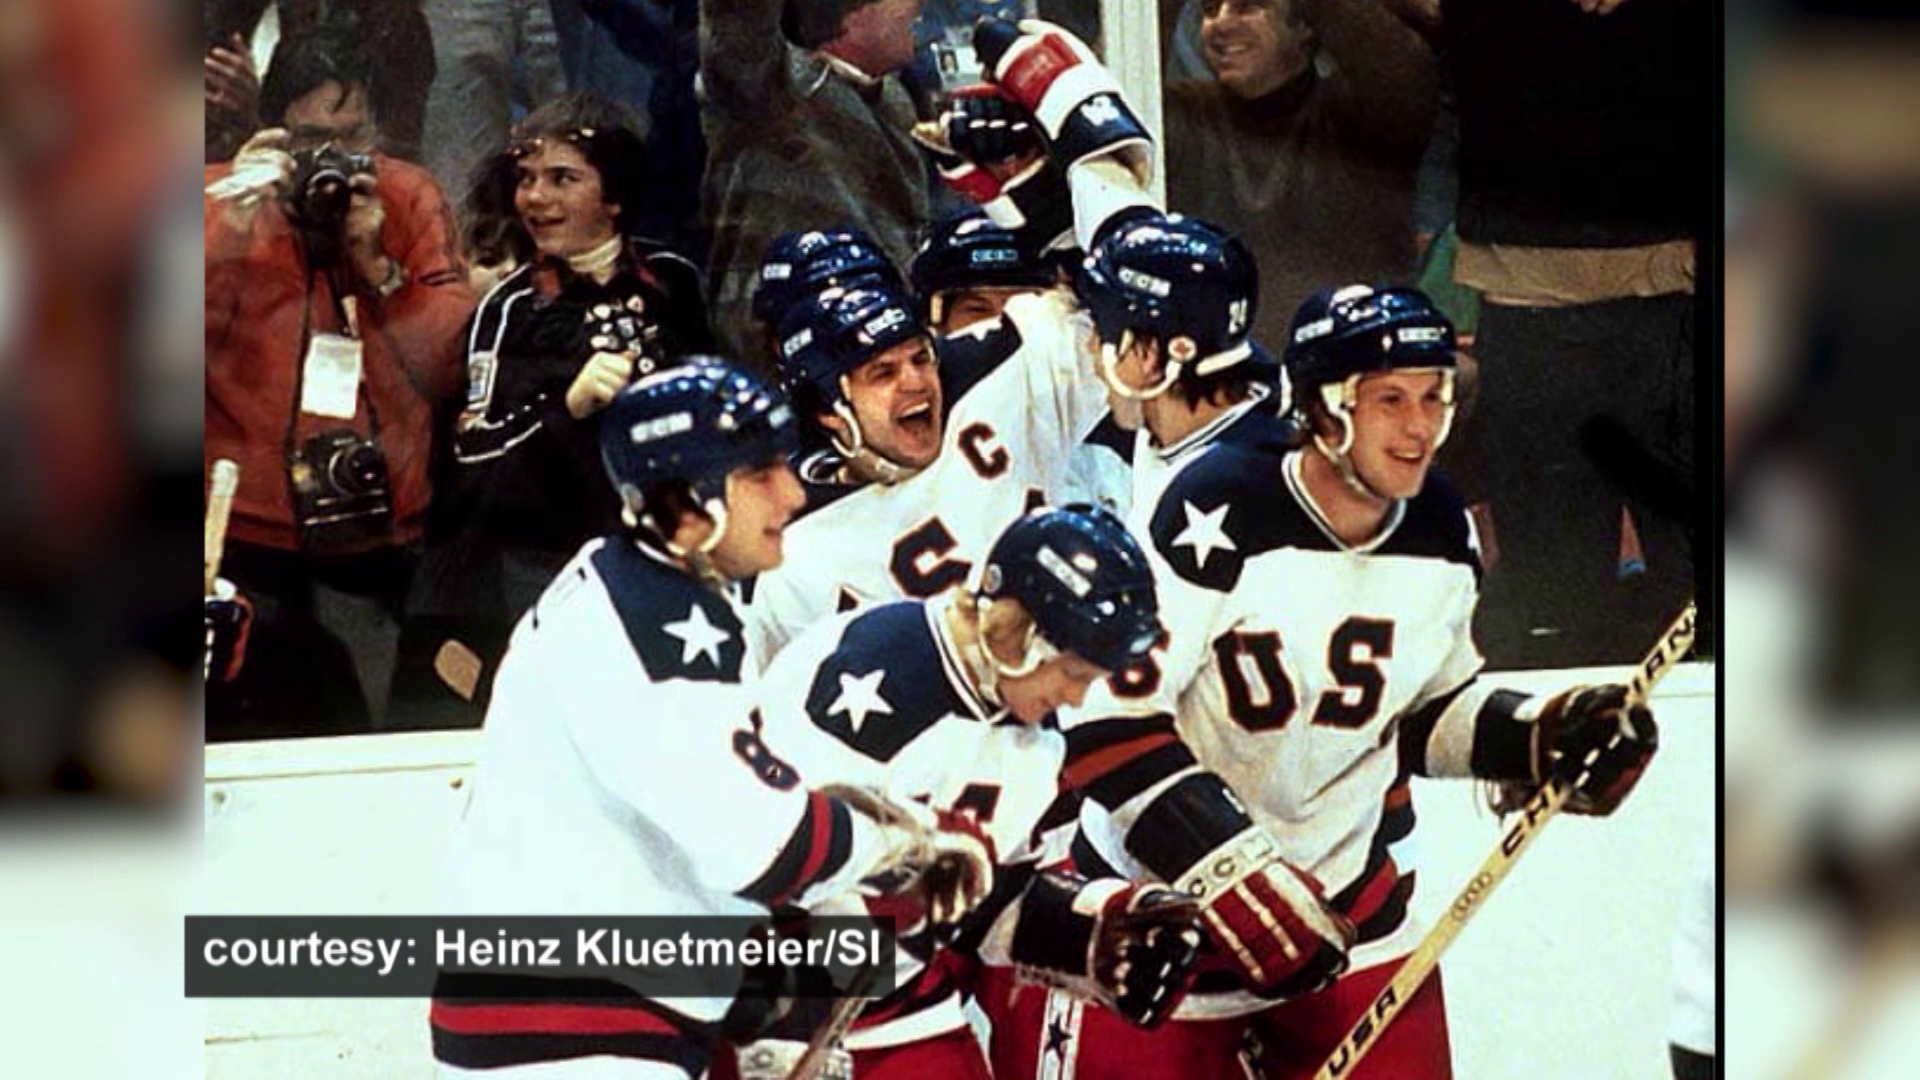 WATCH: 1980 US Men Olympic Hockey Captain Mike Eruzione reflects on the team's Miracle on Ice win over the Soviets, and what the game meant to America.